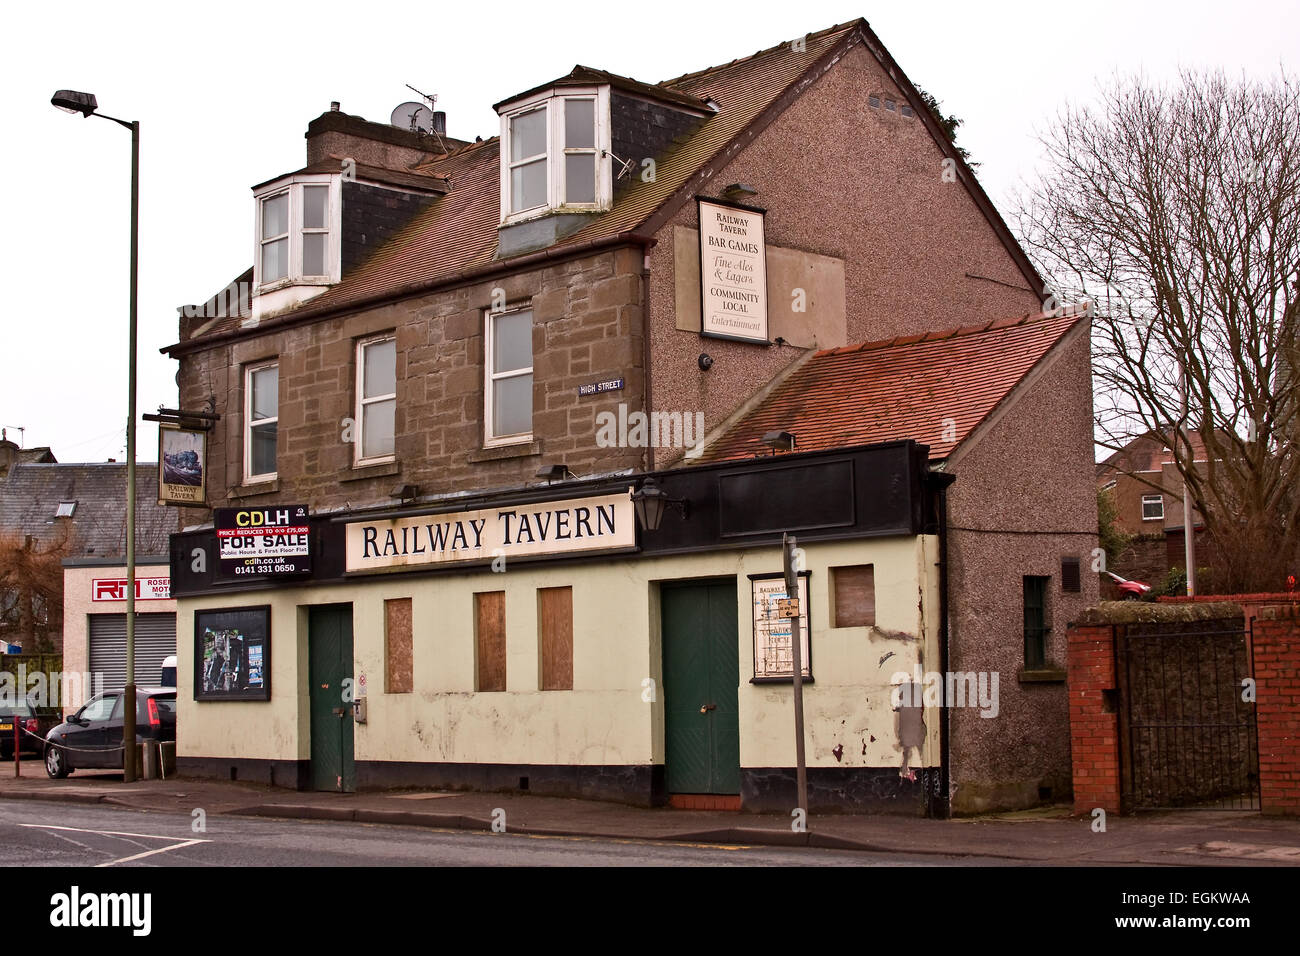 The 19th century Lochee Railway Tavern situated on Lochee Road Dundee, UK - Stock Image